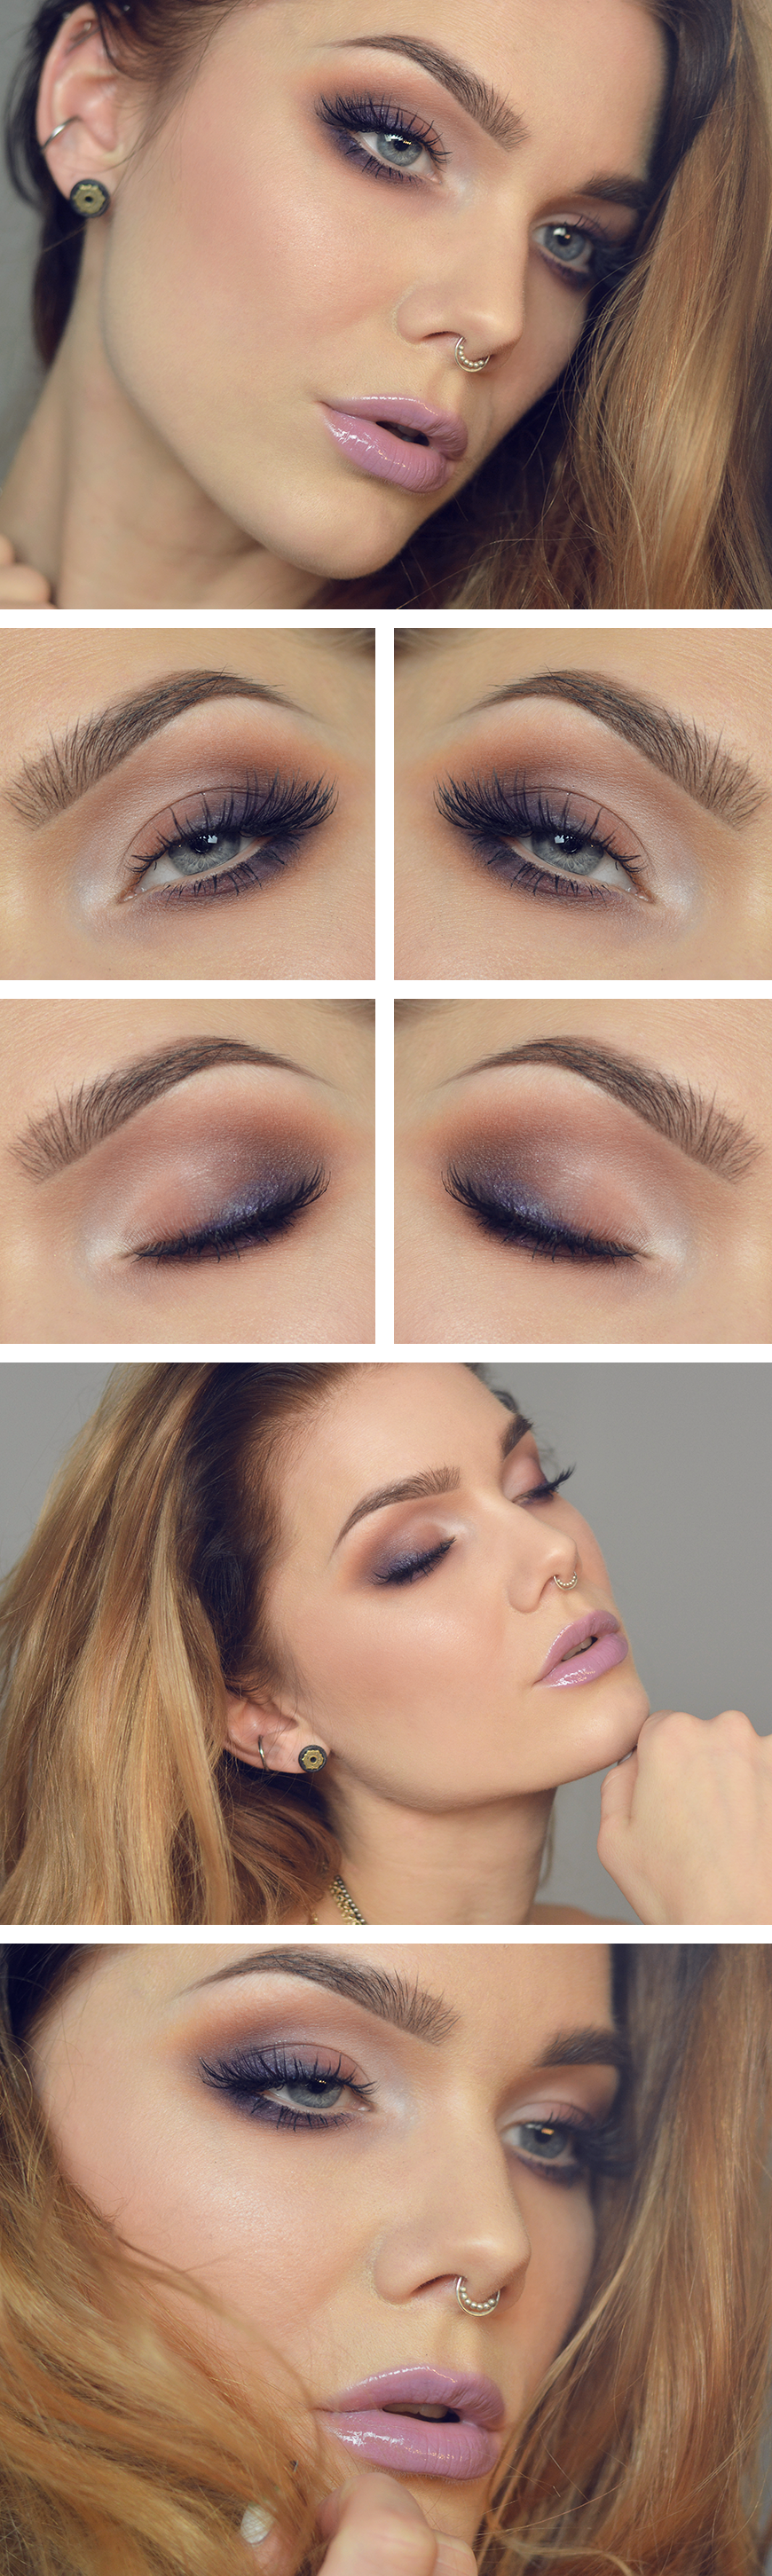 Best makeup tricks to look better in a photo mymakeupideas